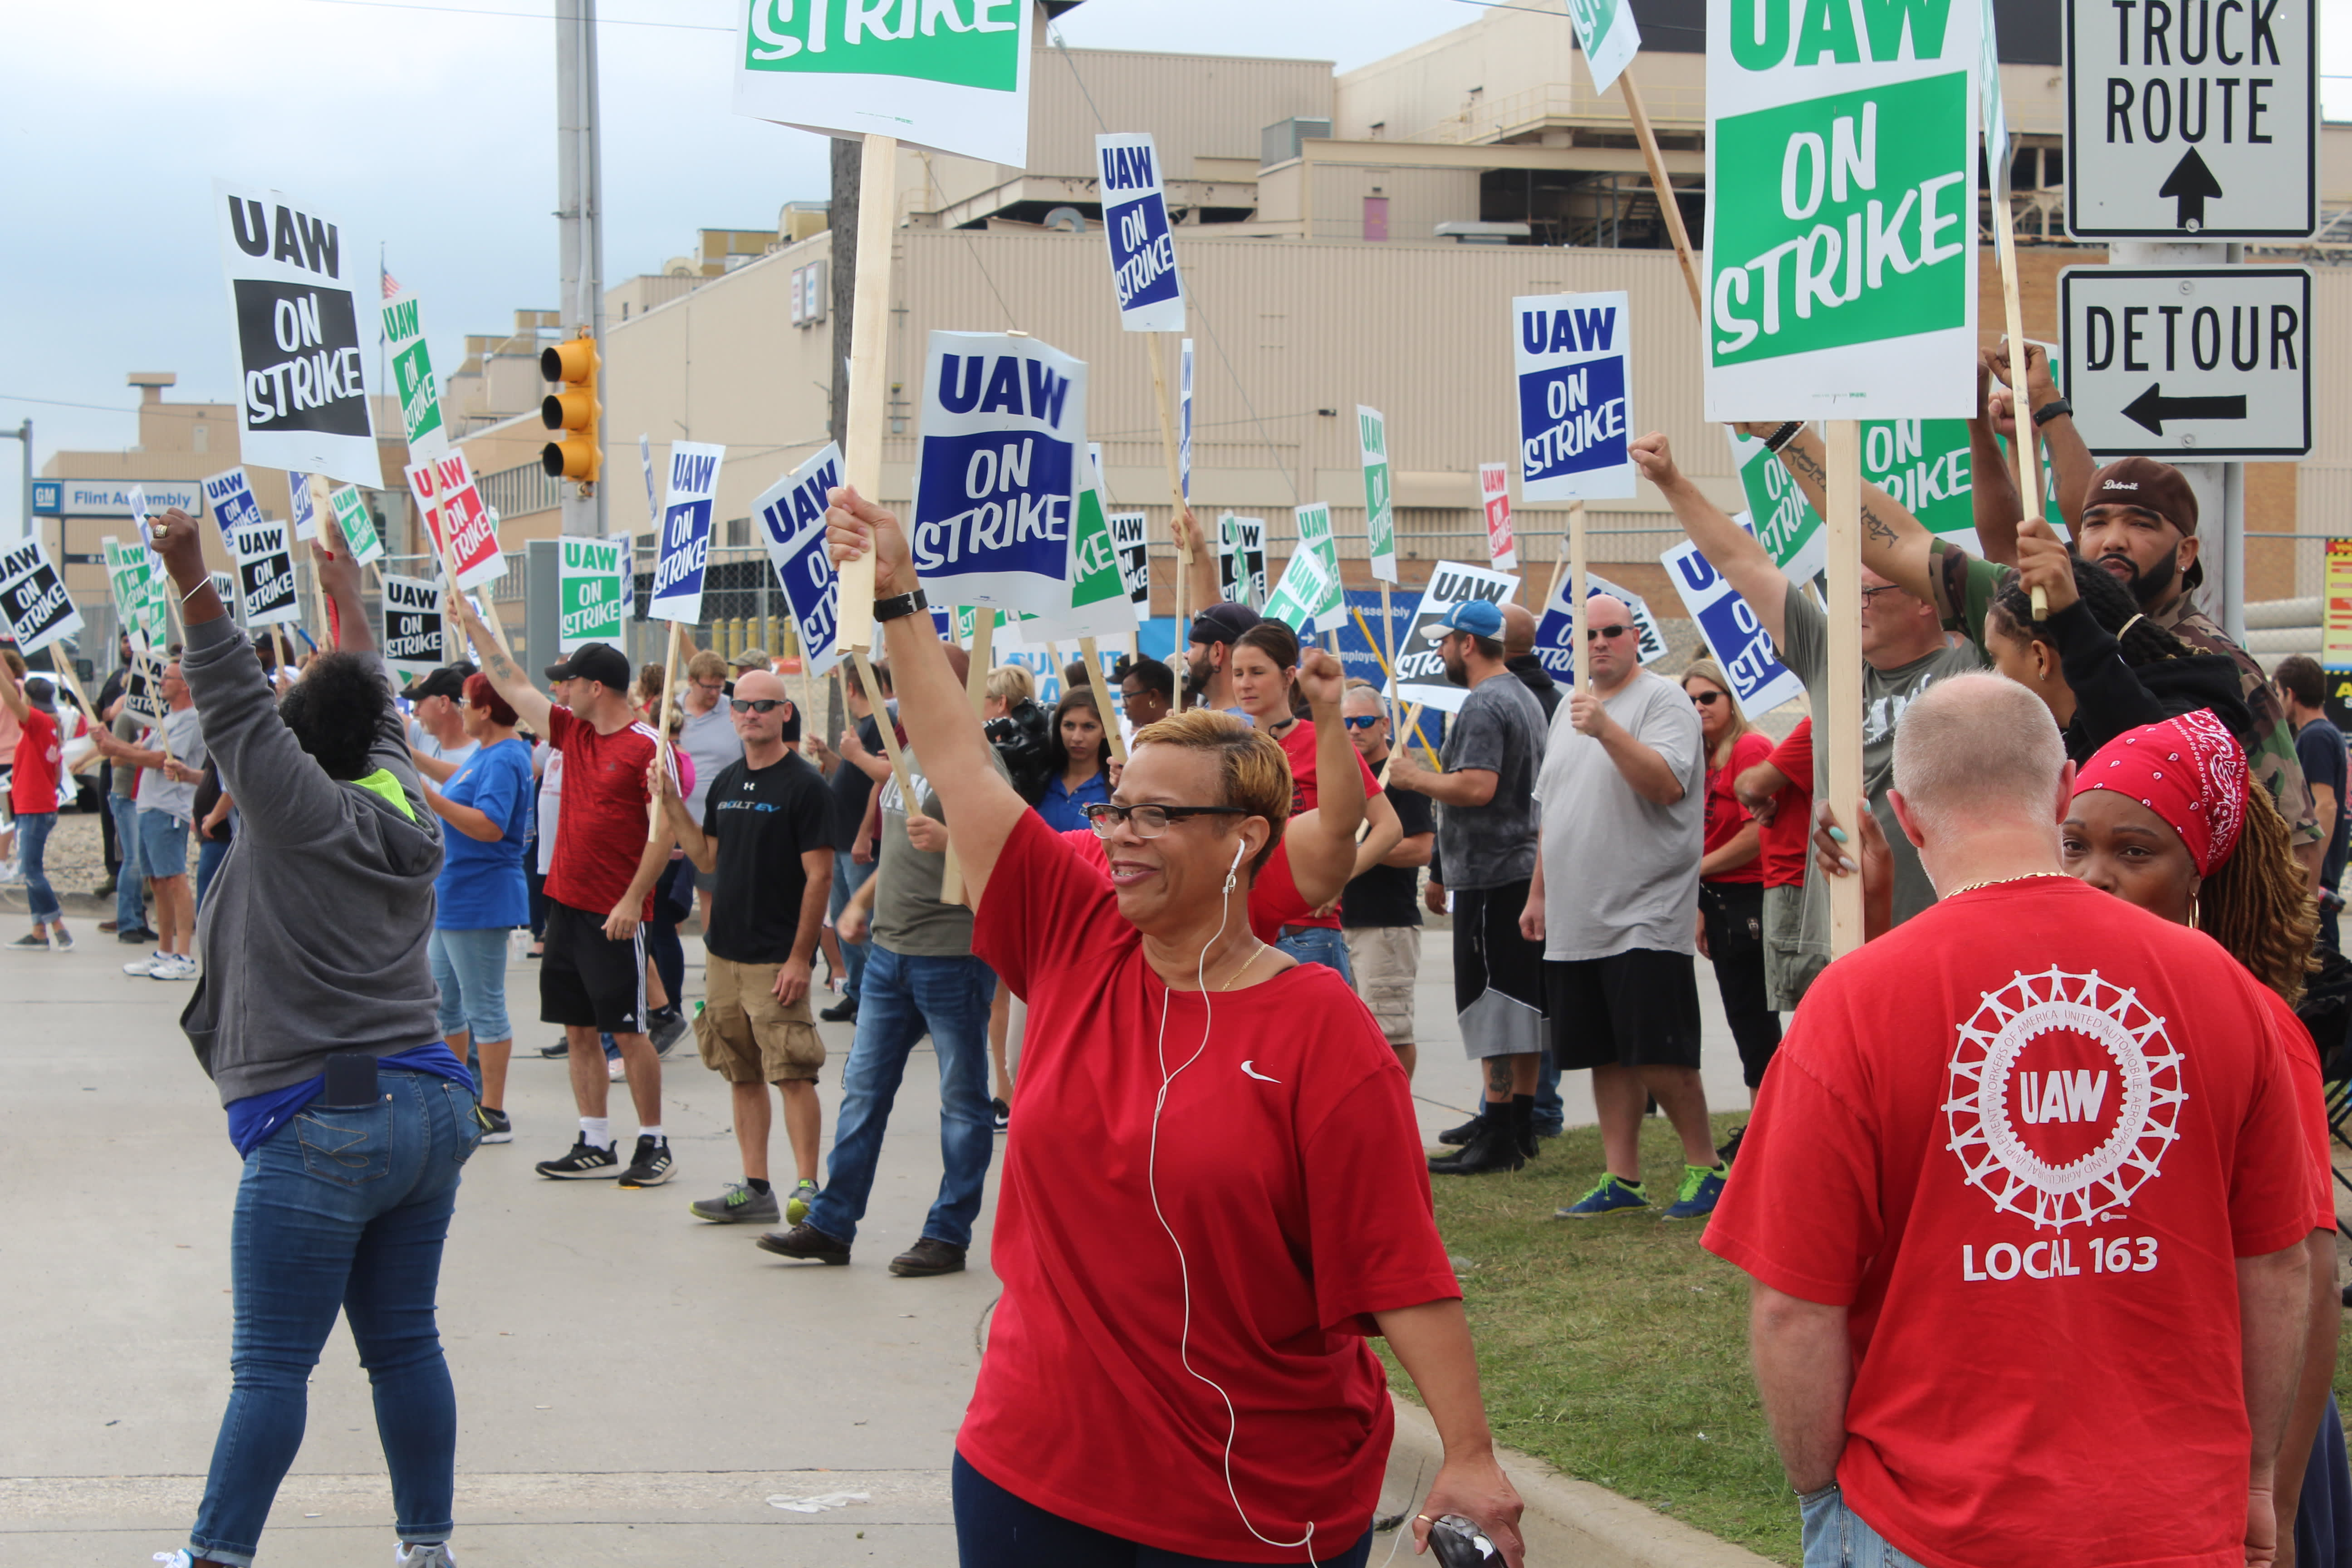 GM to temporarily lay off 1,200 workers in Canada due to slowdown at US plants during UAW strike